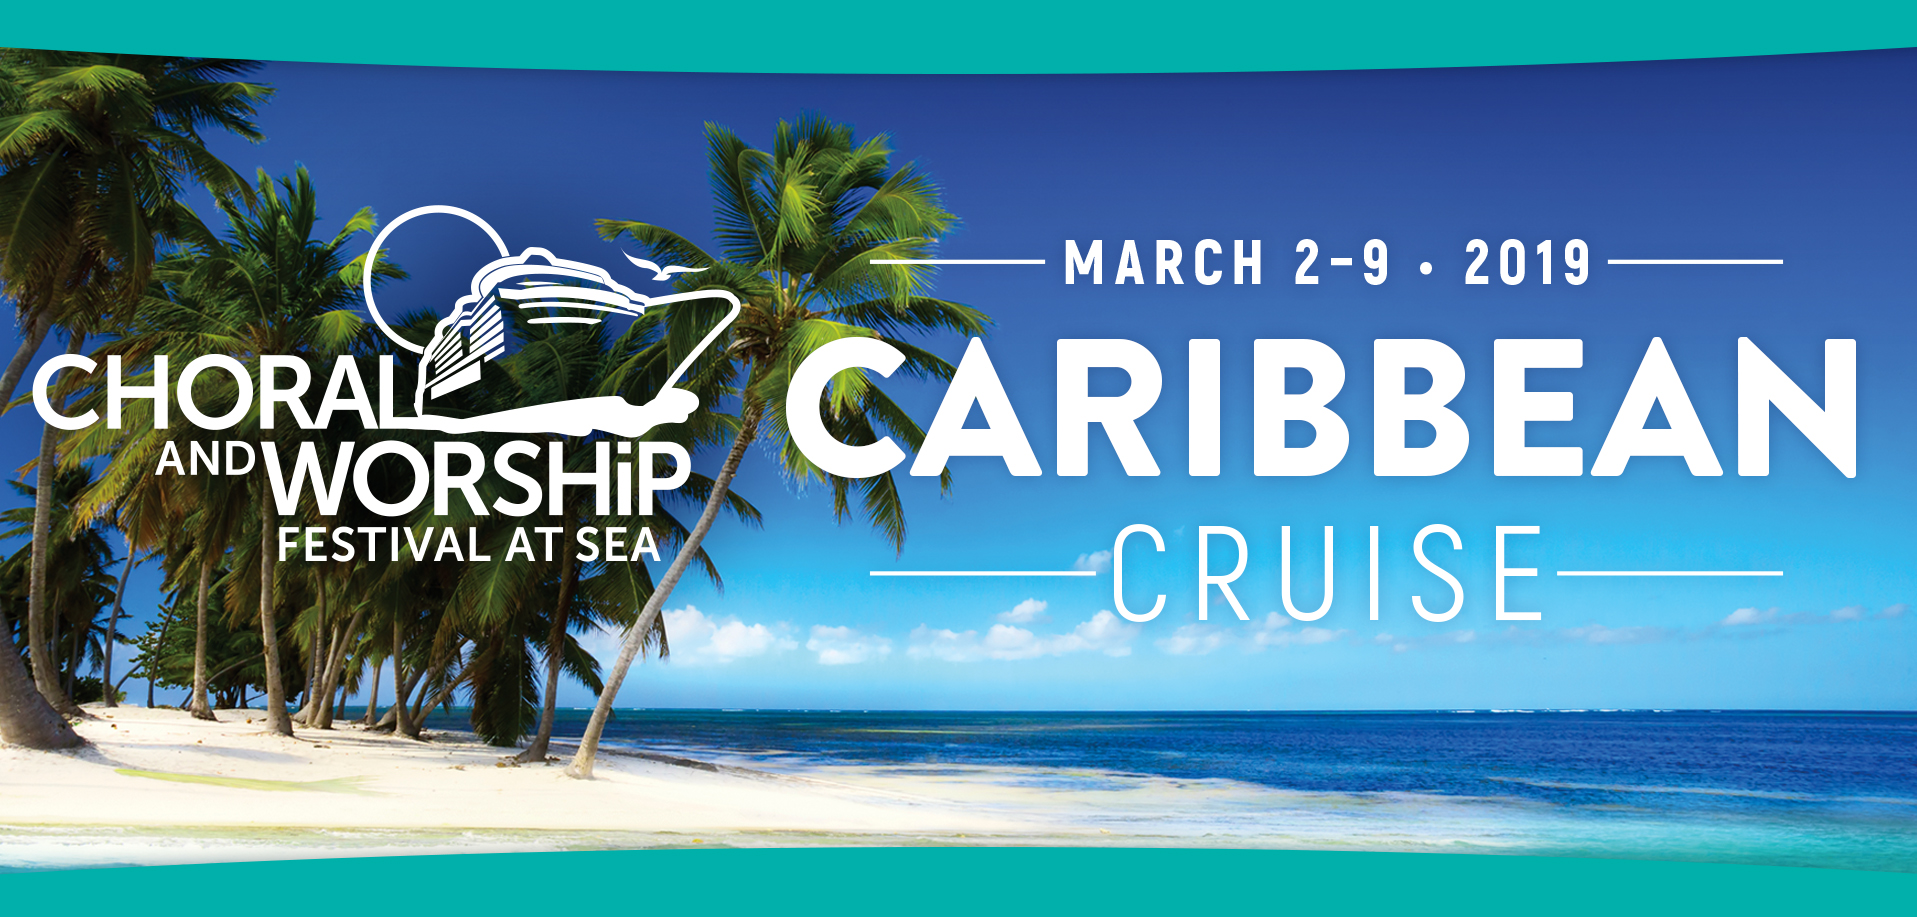 Take a Christian Cruise with Choral and Worship Festival at Sea - Christian Cruise to the Caribbean - March 2-9, 2019